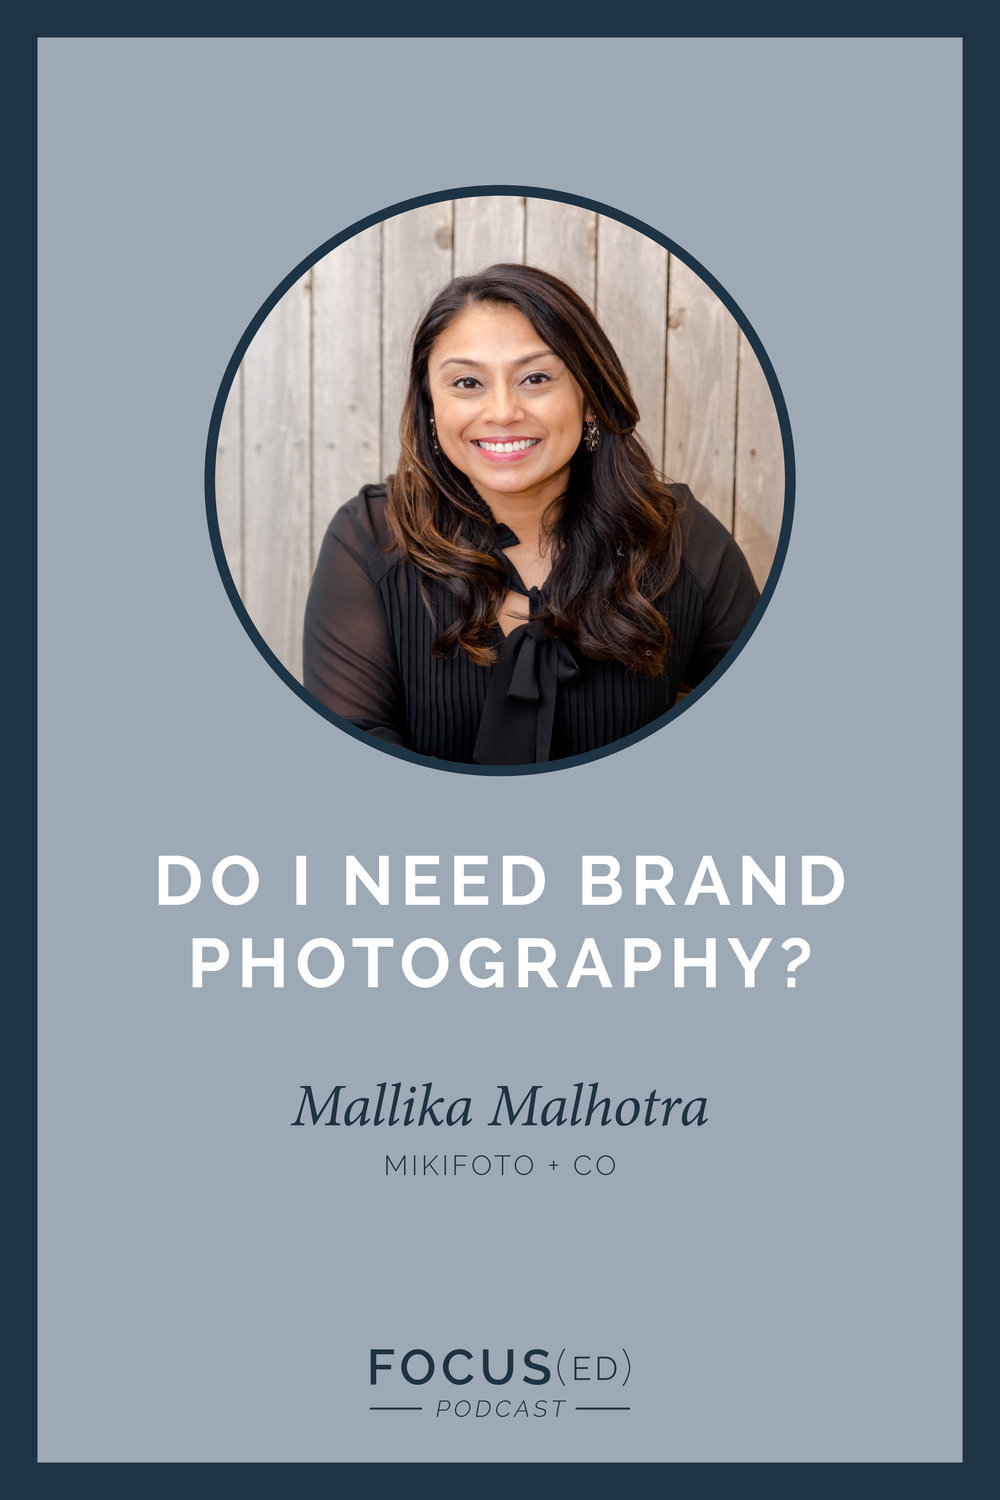 Do I need brand photography?